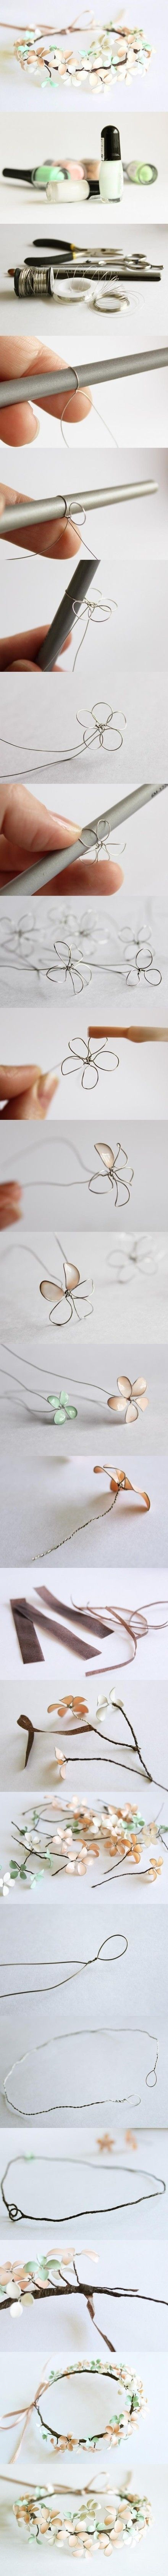 DIY Flowers from nail polish and wire